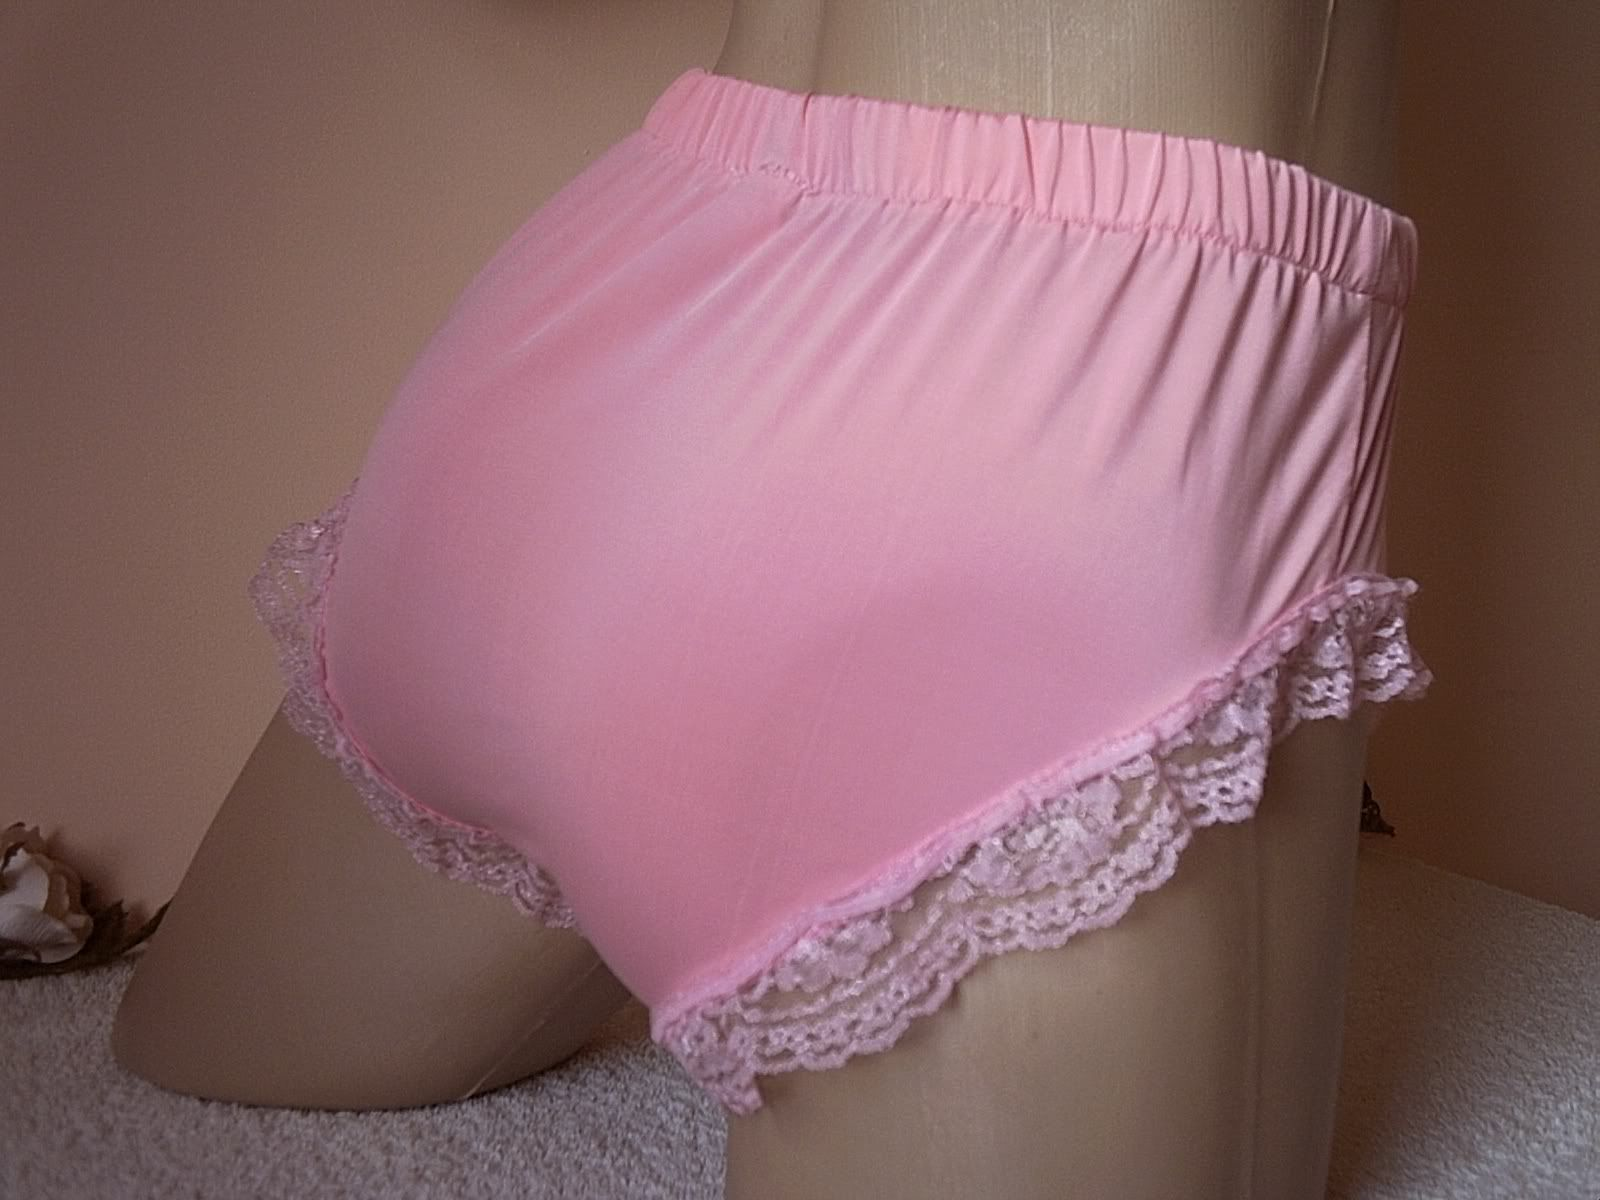 Frilly Sissy Tumblr in men's sissy baby pink silky stretch sleeved panties cute frilly